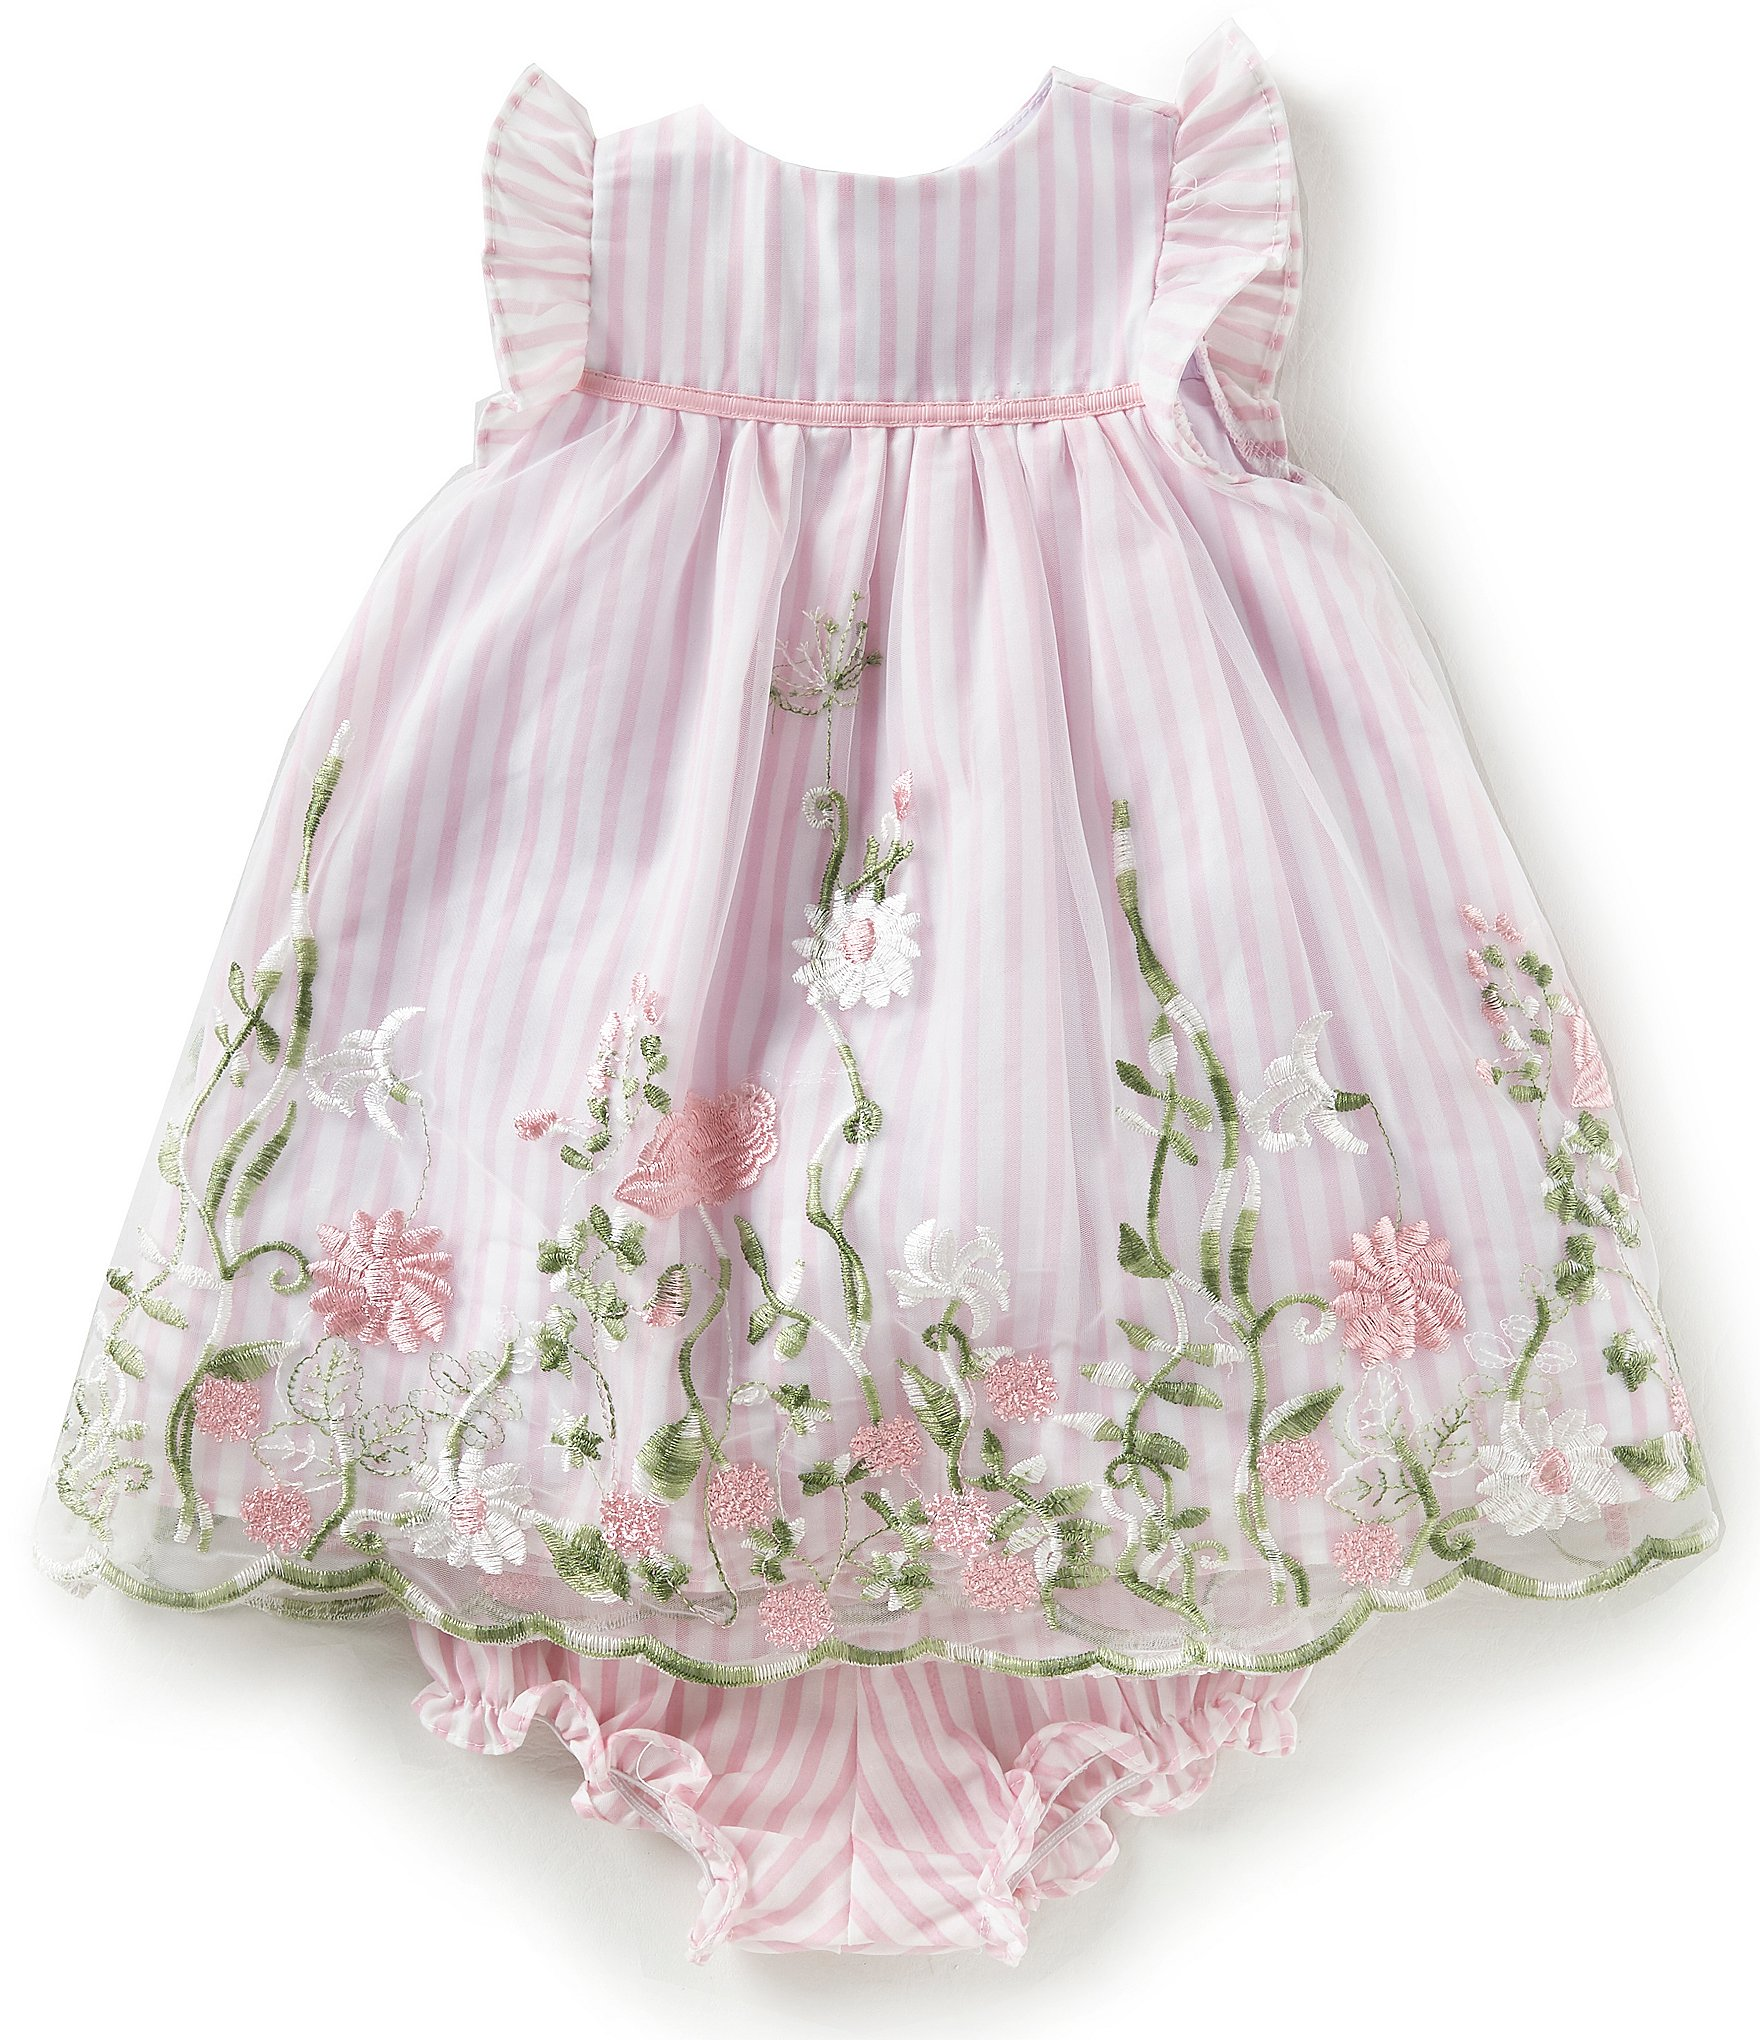 Cute Infant Baby Girl Easter Dresses For Holidays And Special Occasions - Adorable Children's Clothing & Accessories